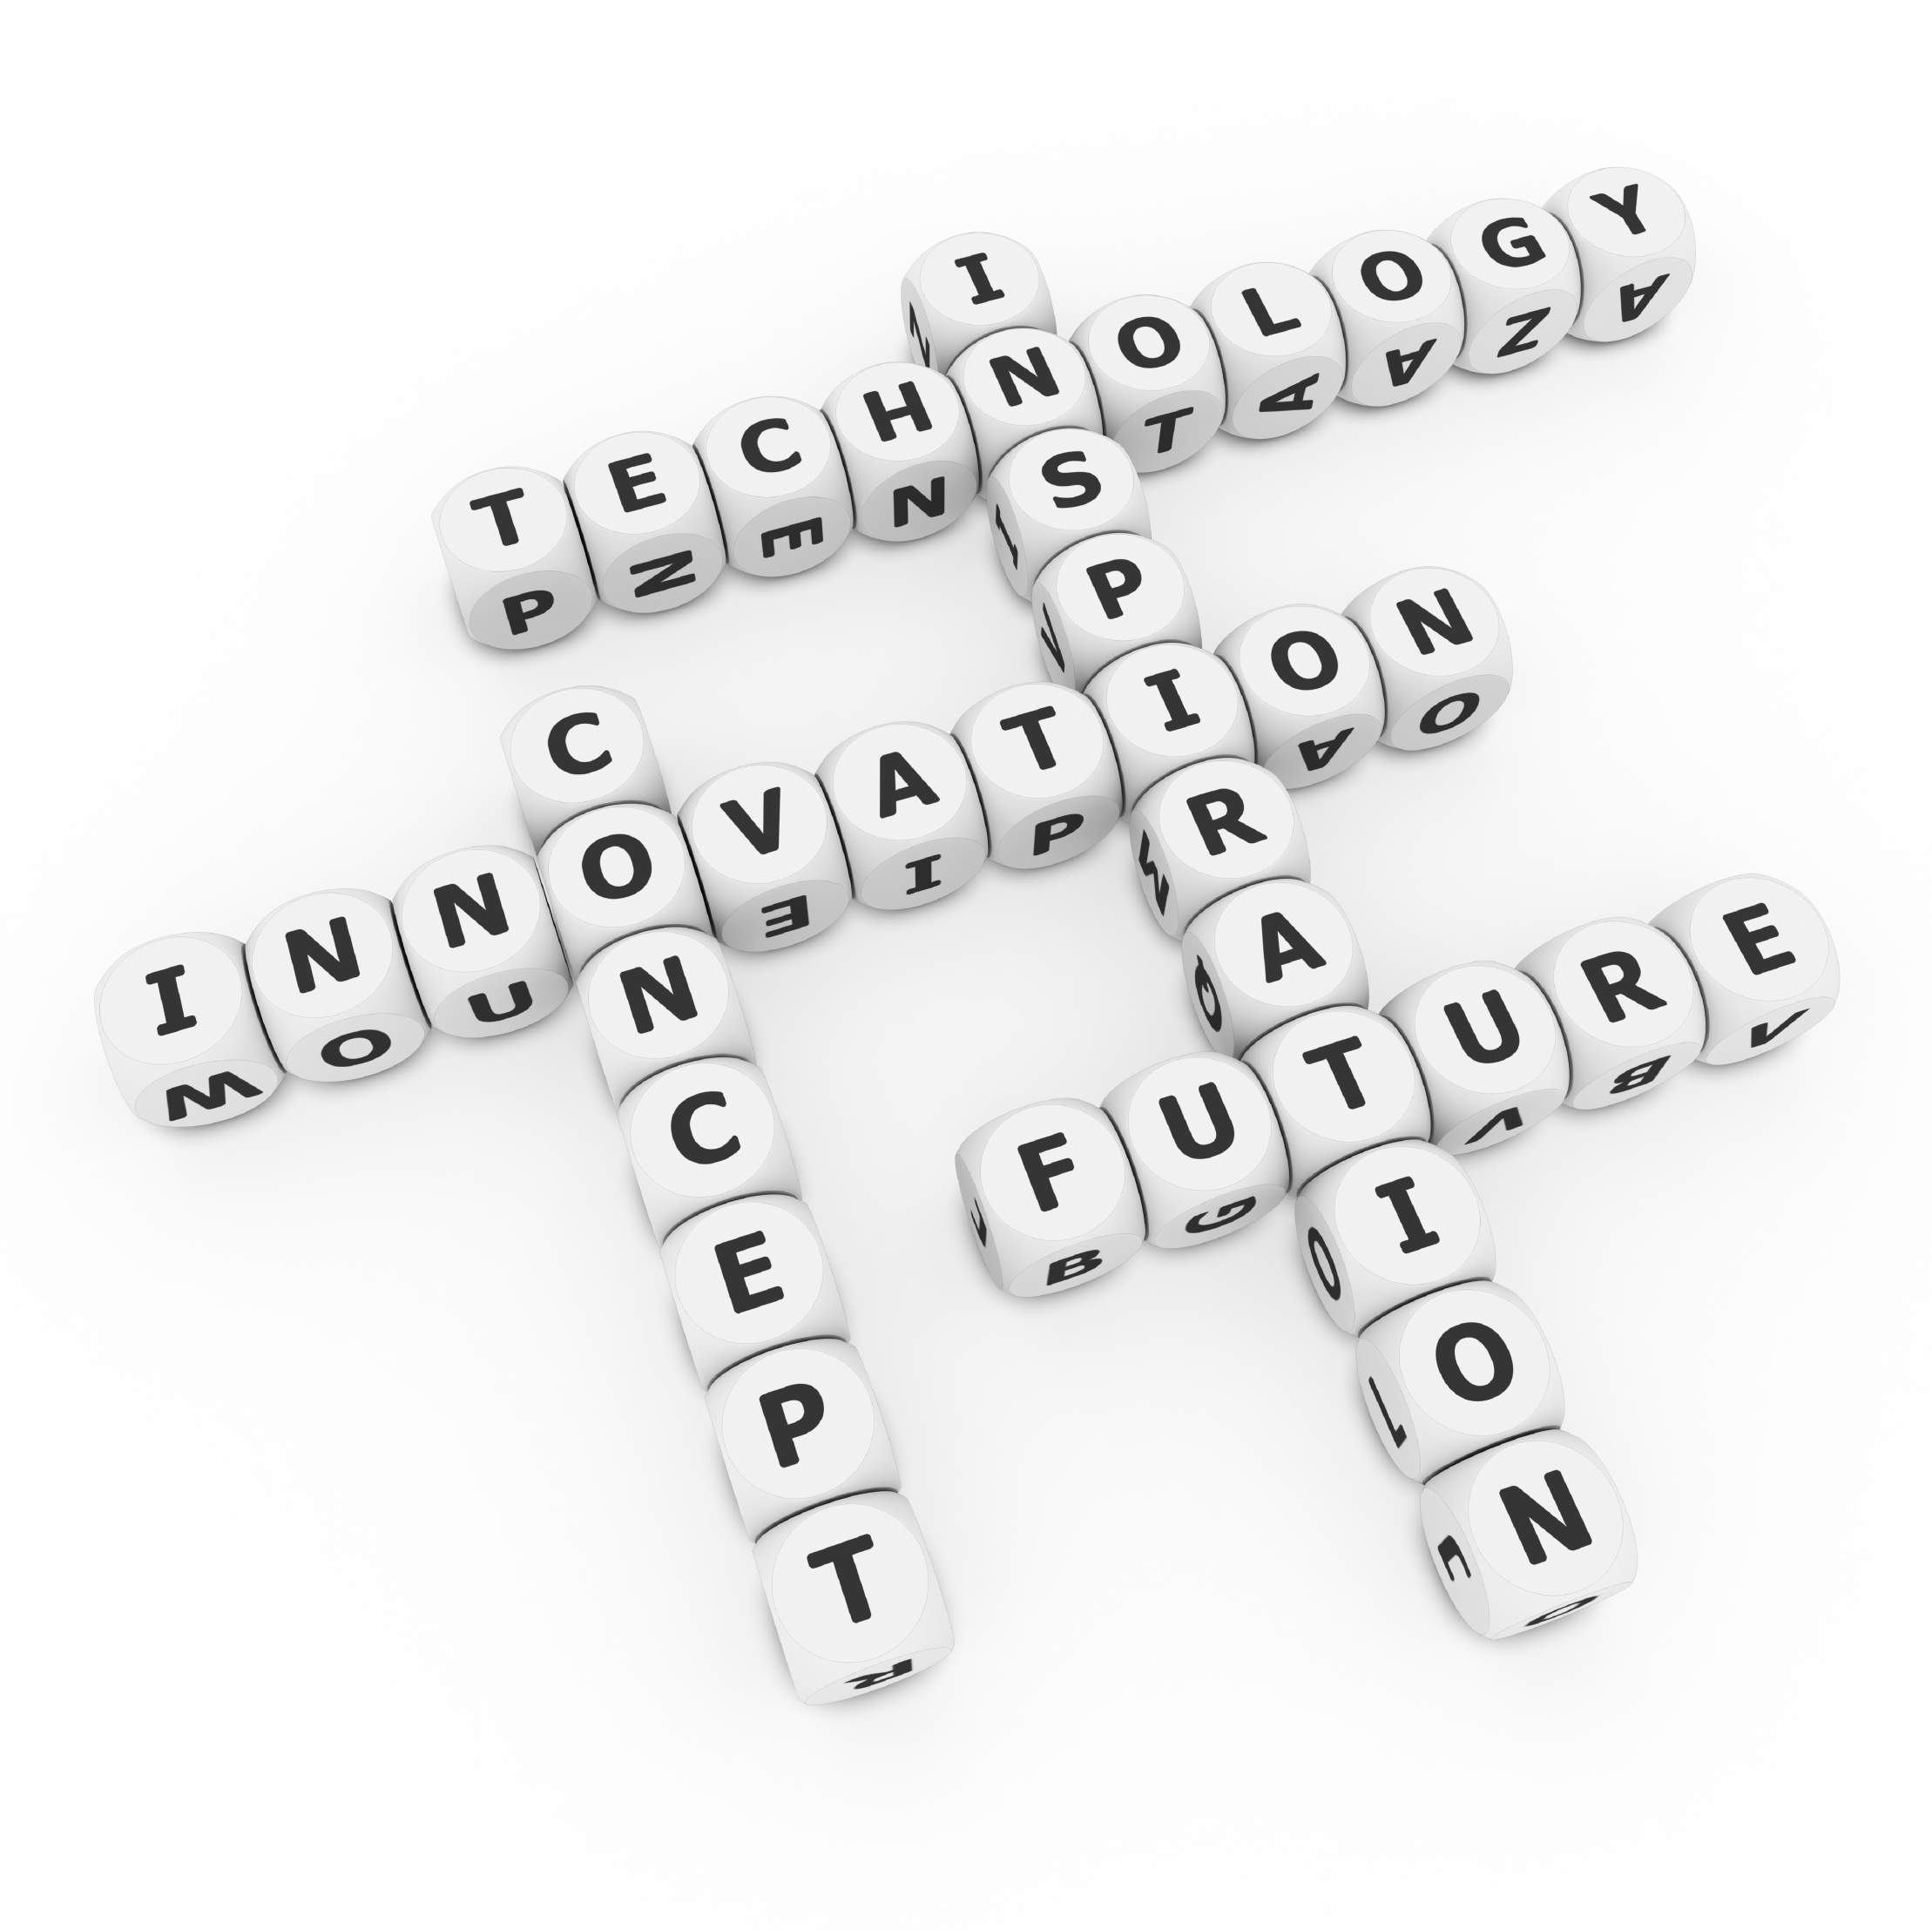 2020 payments innovation: Industry experts say new tech is key